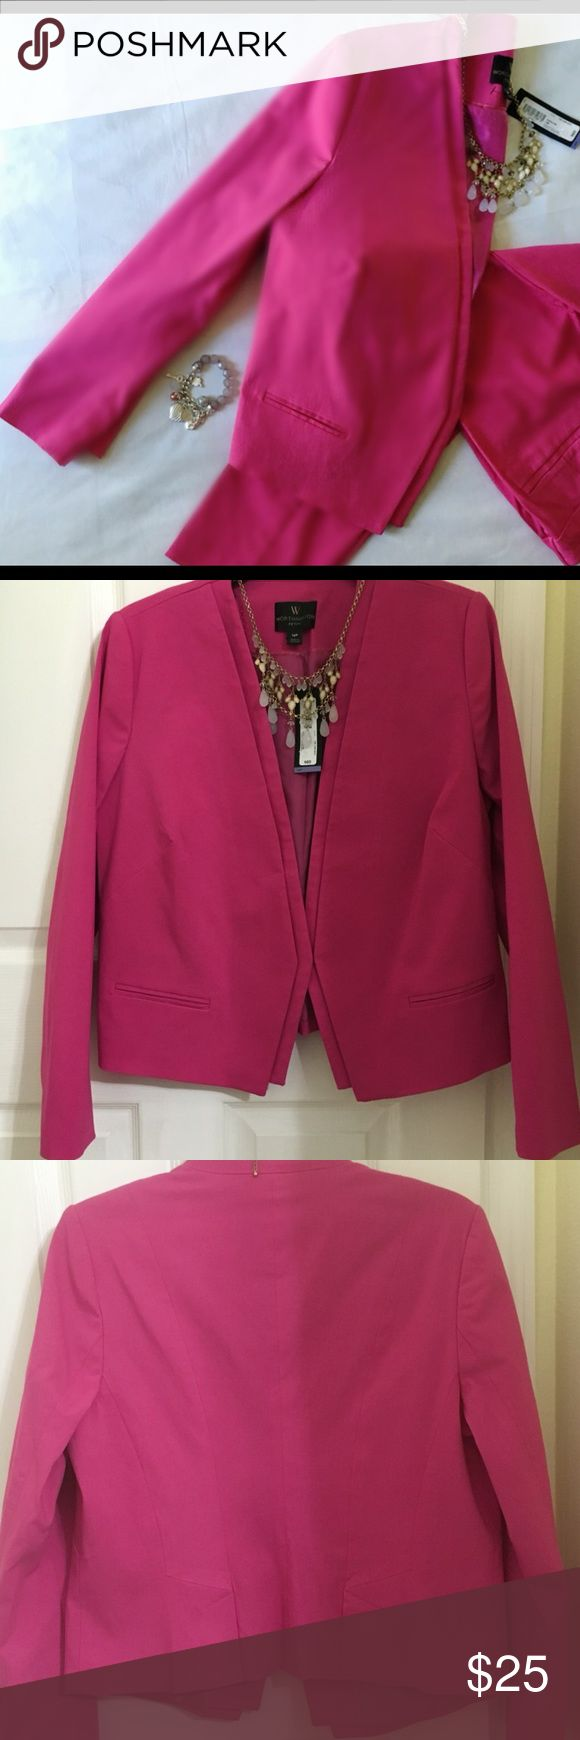 Worthington Petite Suit Blazer Add some modern elegance to your. Professional look. Fully lined. Open front jacket.   Worthington Jackets & Coats Blazers